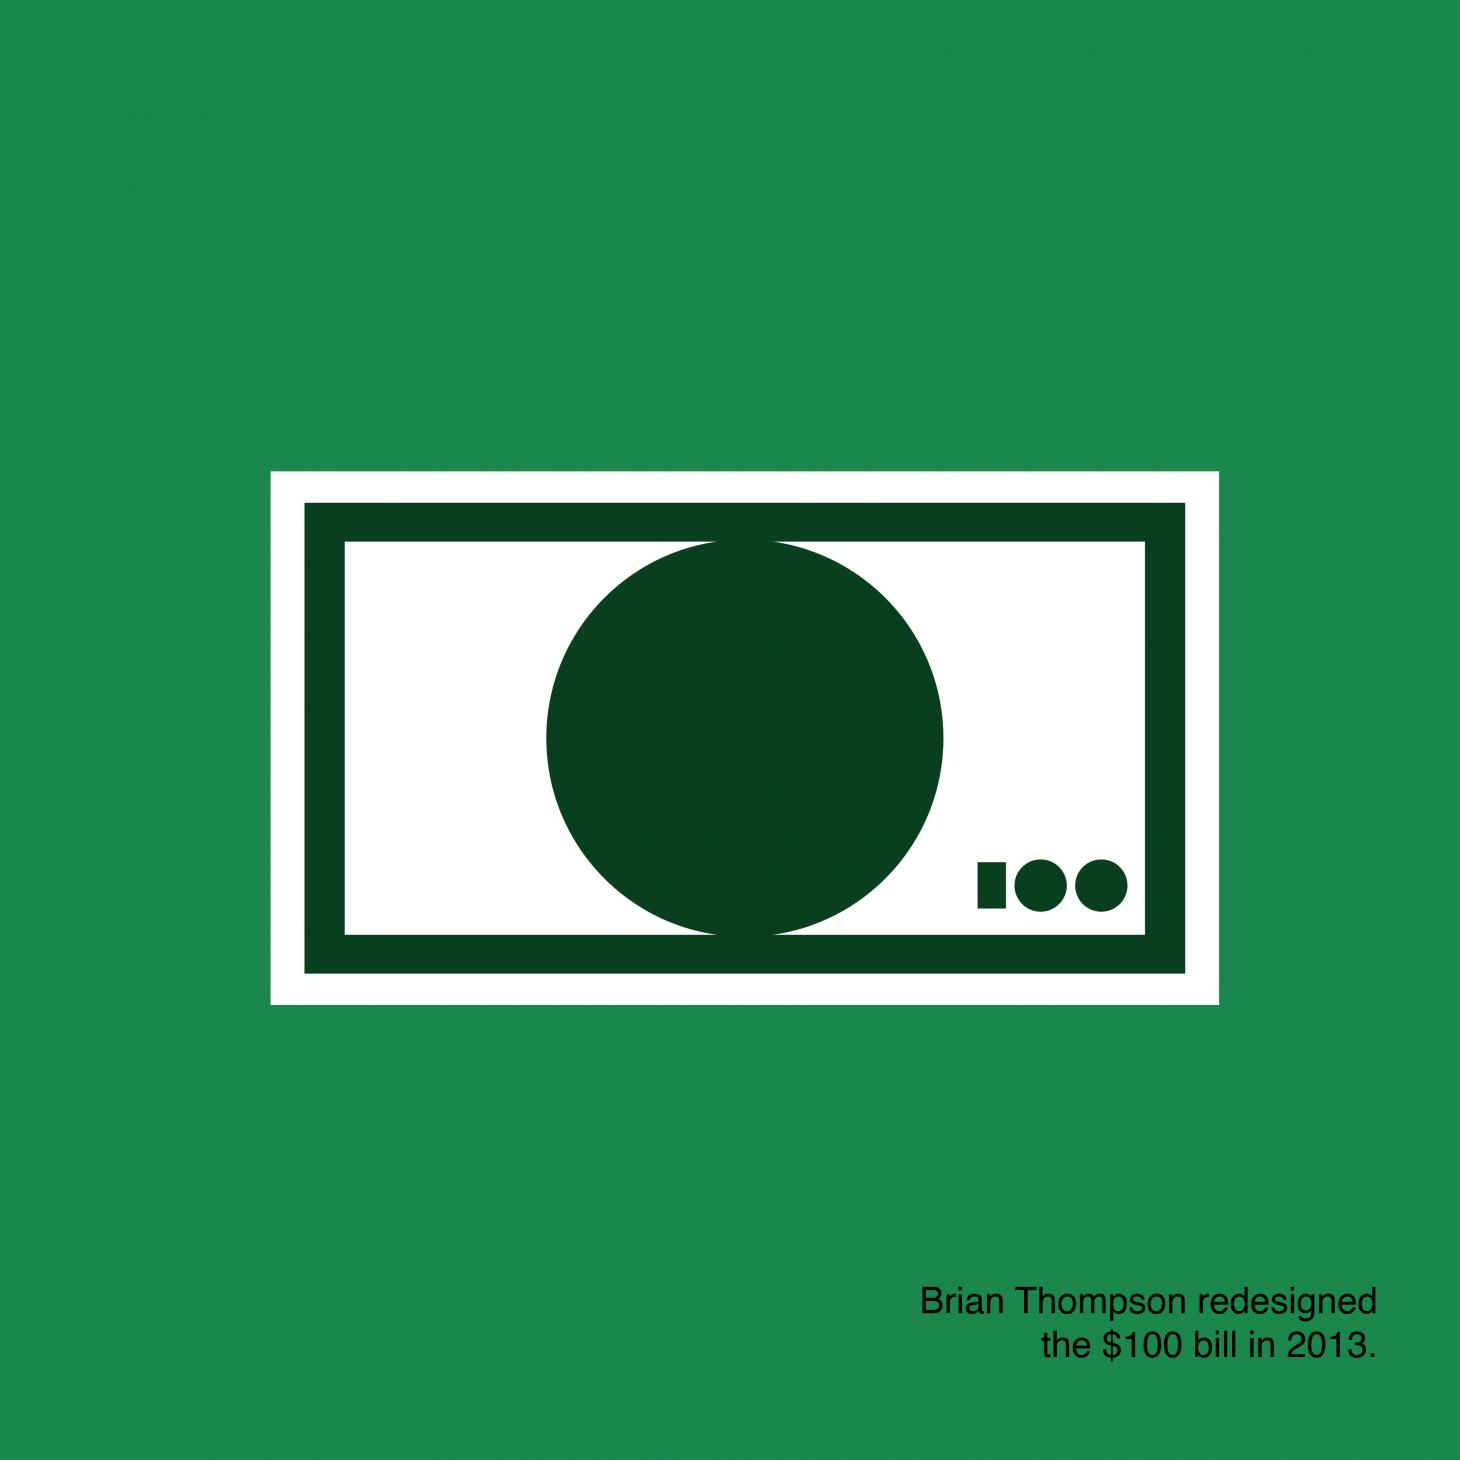 A graphic with a green background and stylized illustration of a hundred dollar bill, with text explaining that it was redesigned by Brian Thompson in 2013